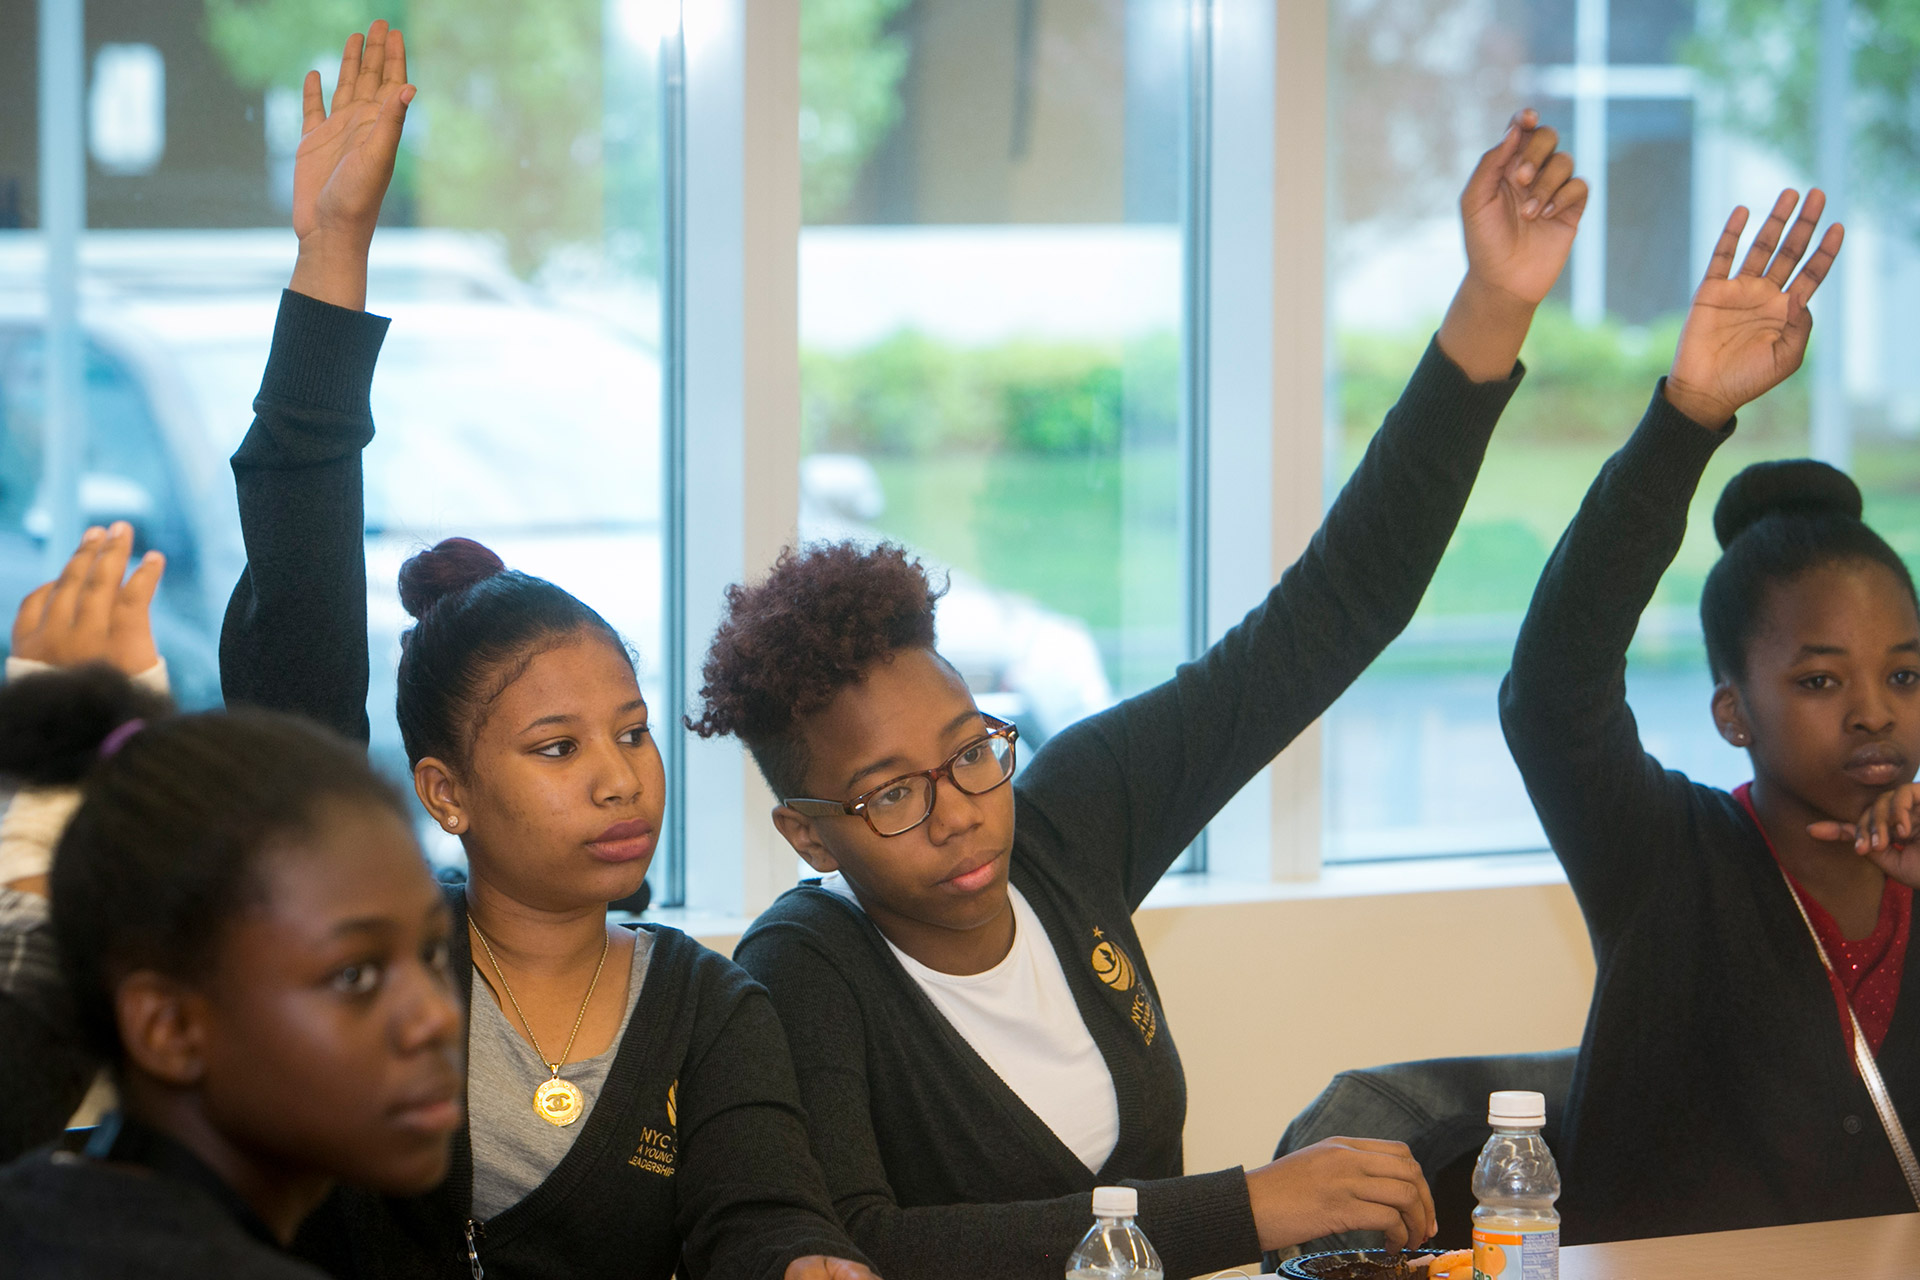 Two girls in class raising their hands